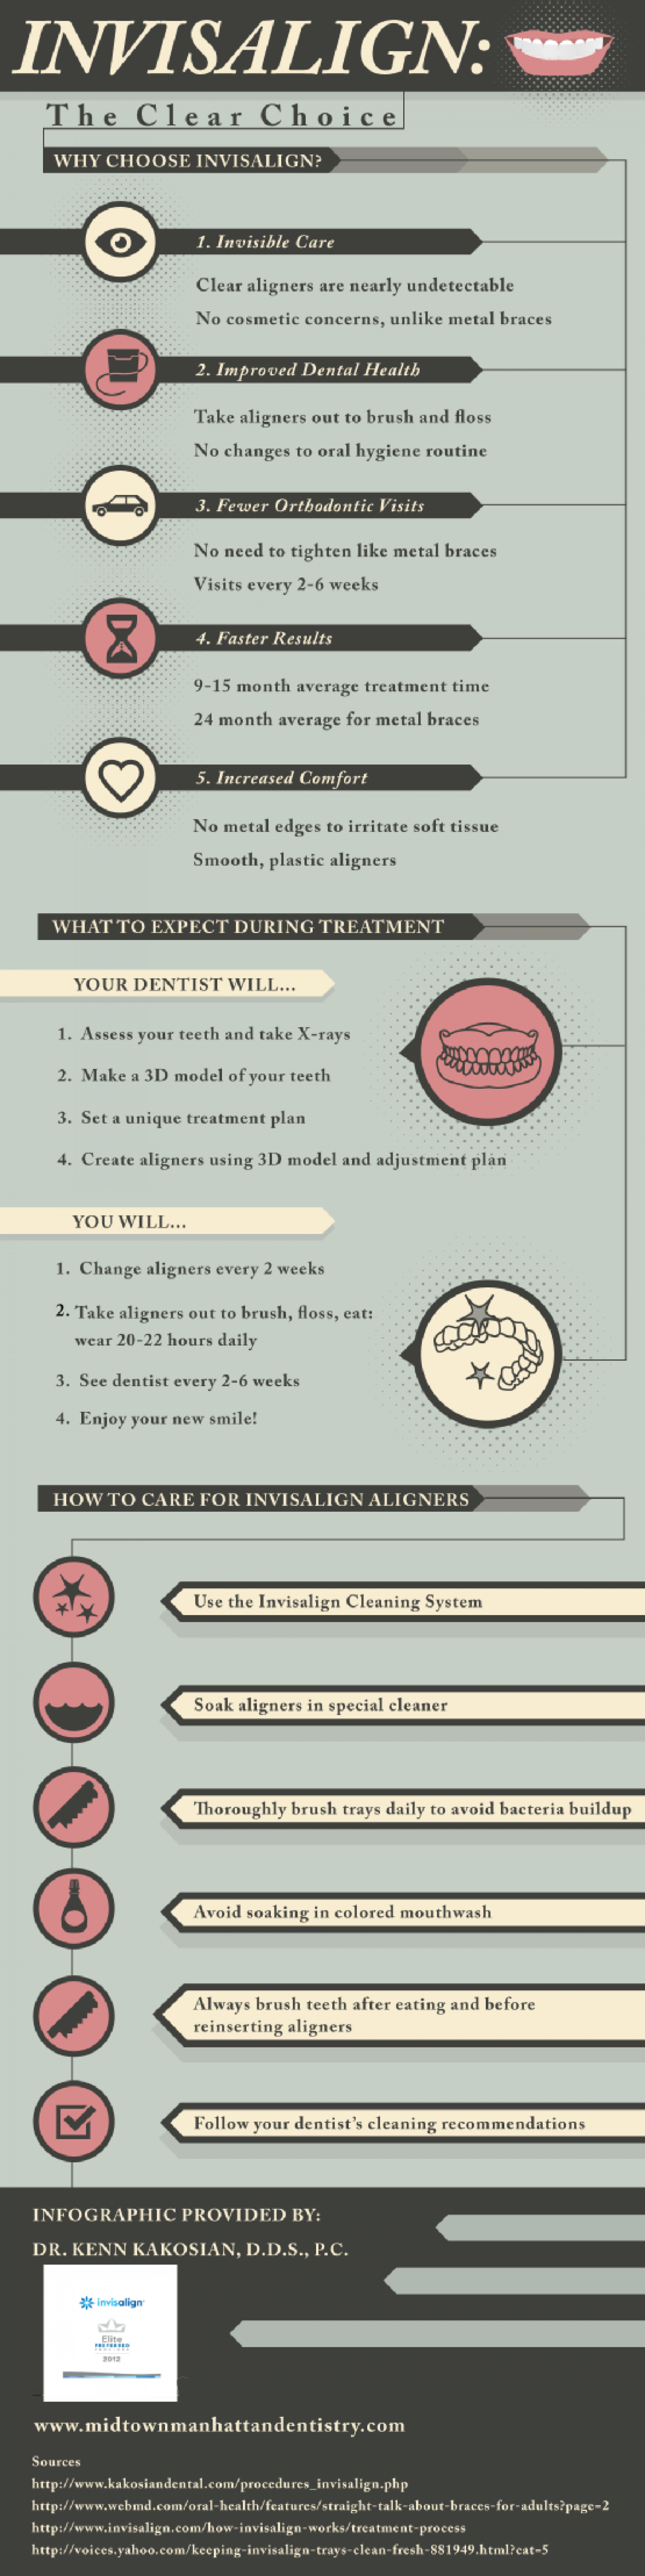 Invisalign®: The Clear Choice Infographic